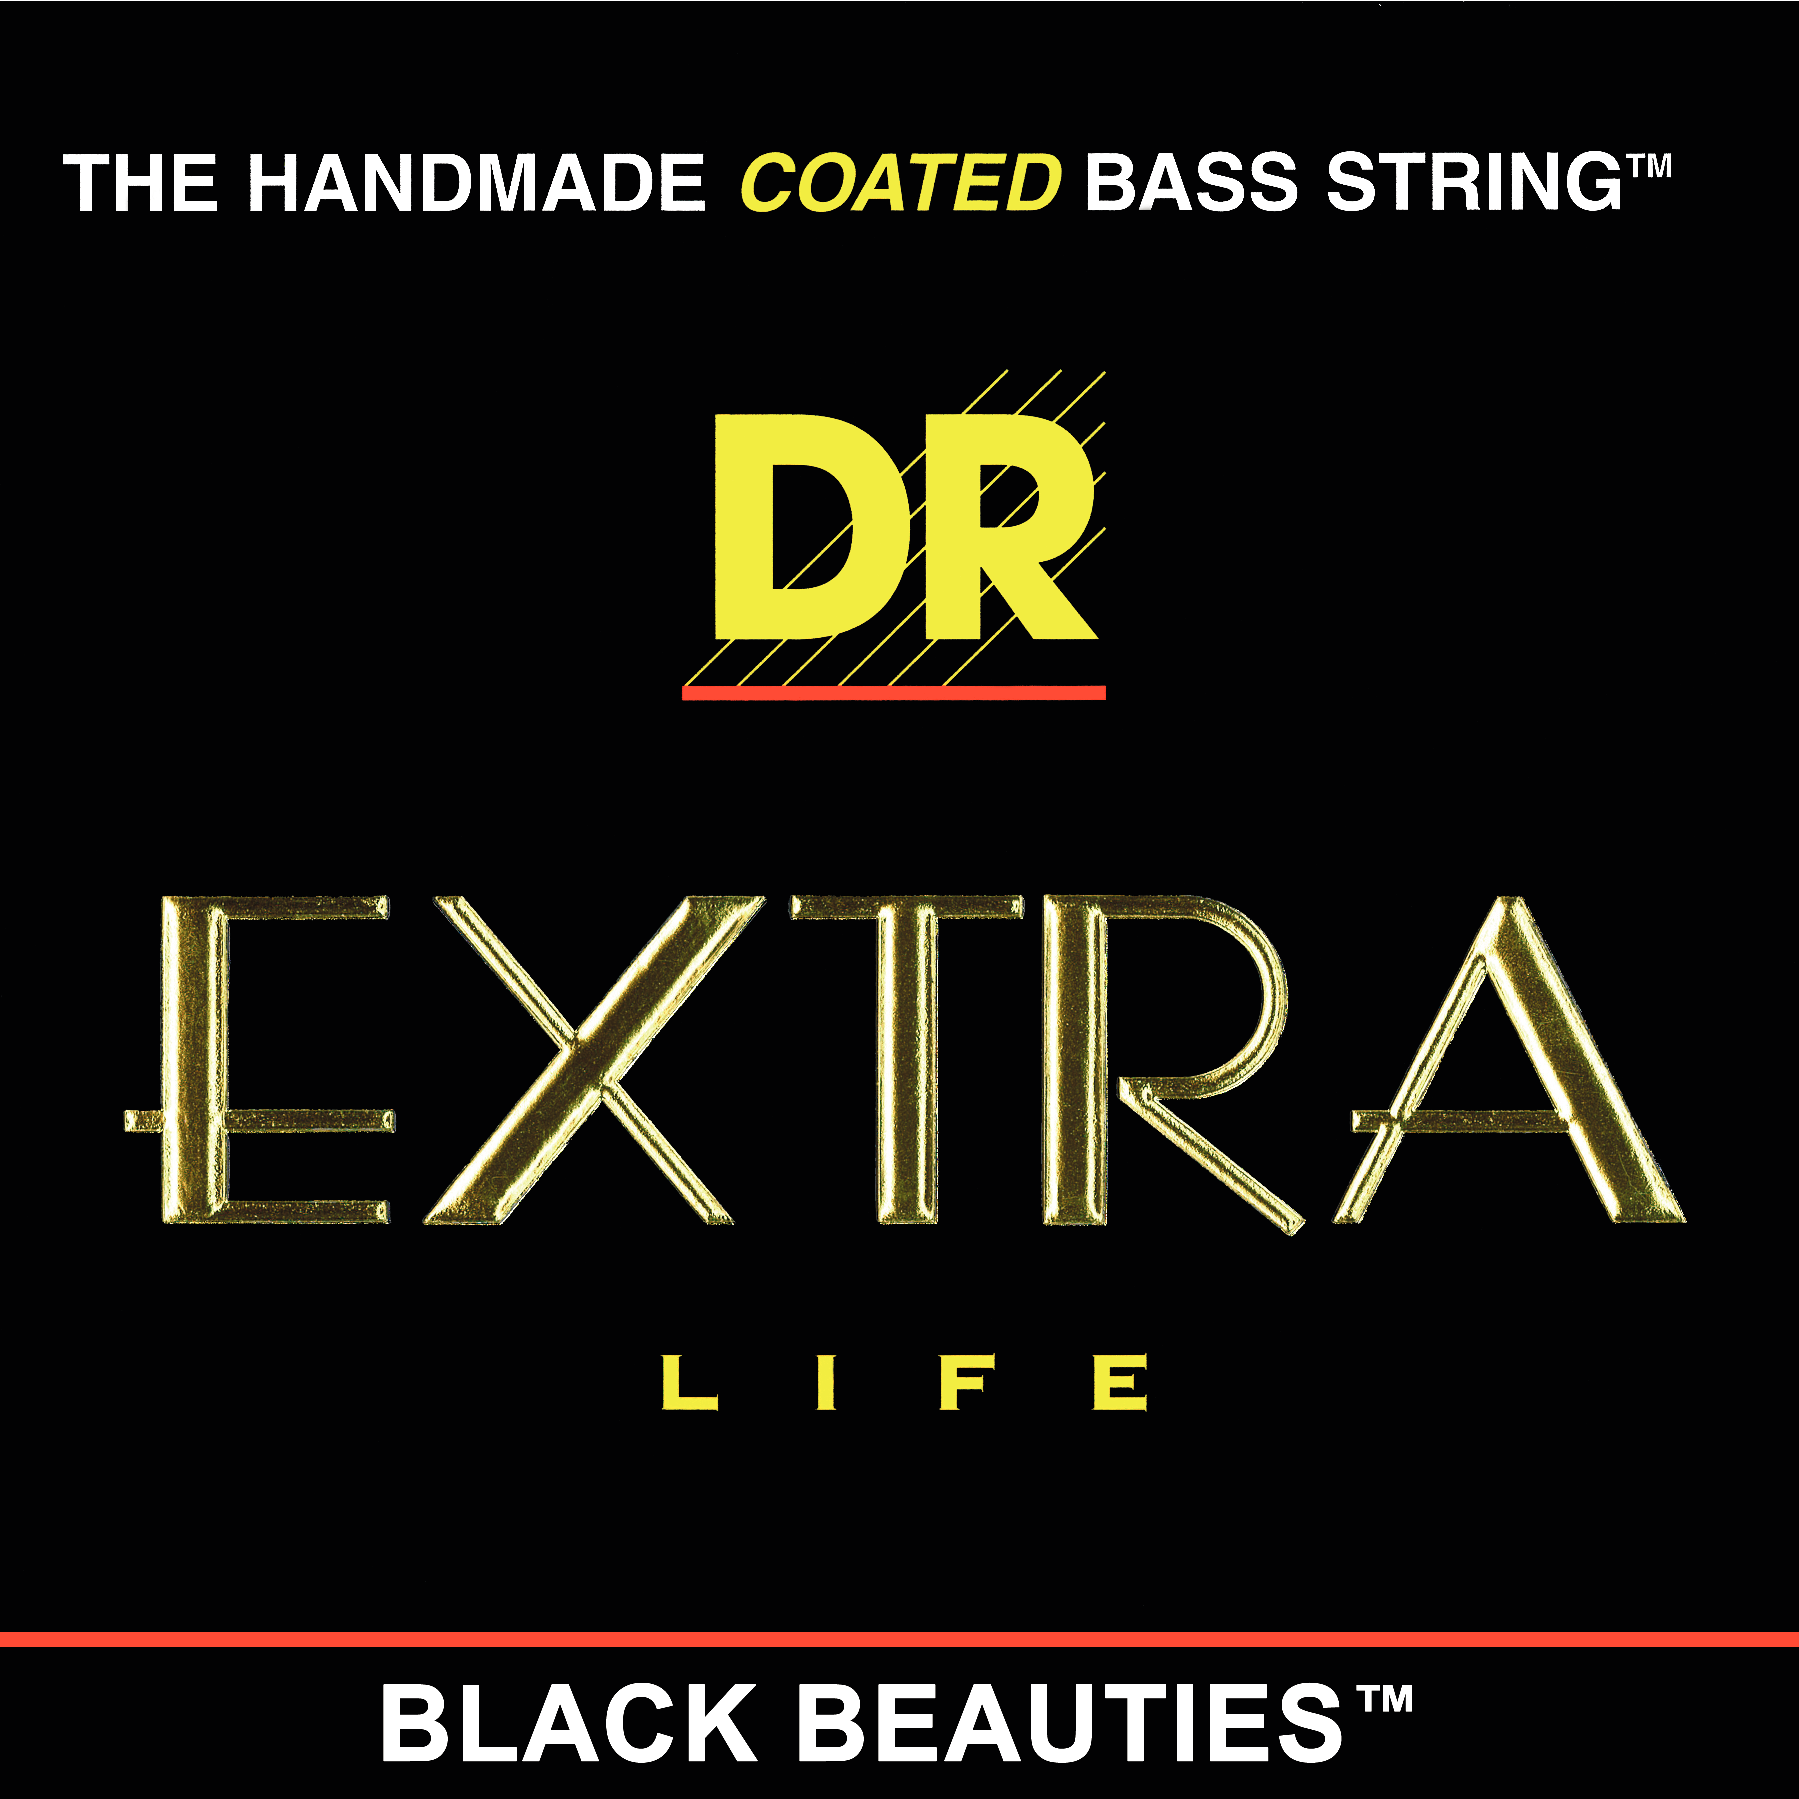 Extra Black Beauties Medium 6 string (.030 - .125), DR B EXBK BKB6-30